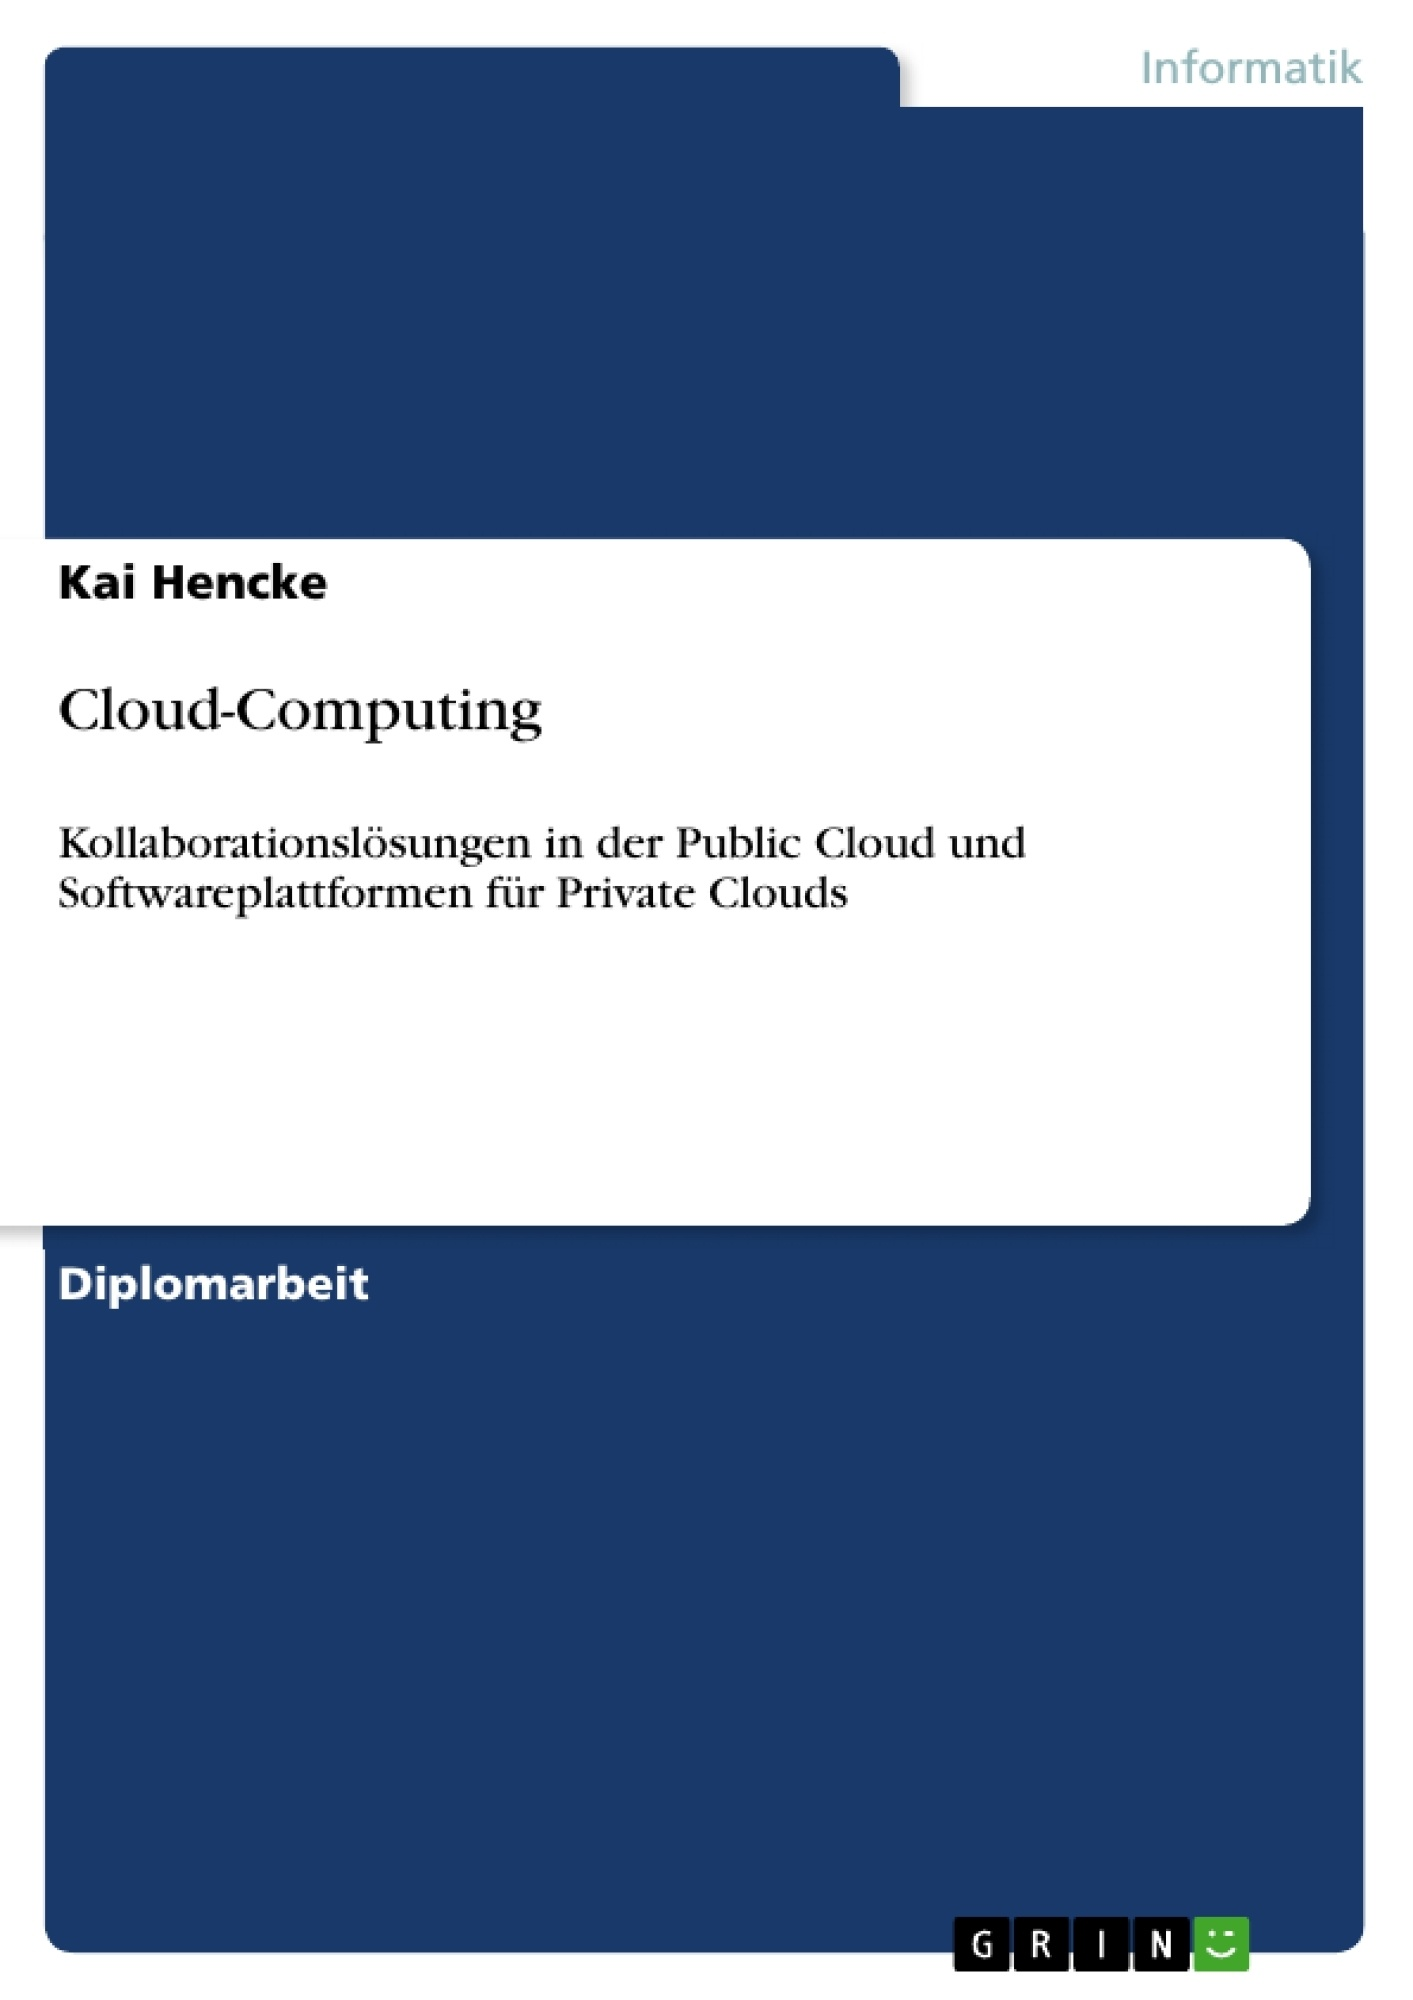 Titel: Cloud-Computing